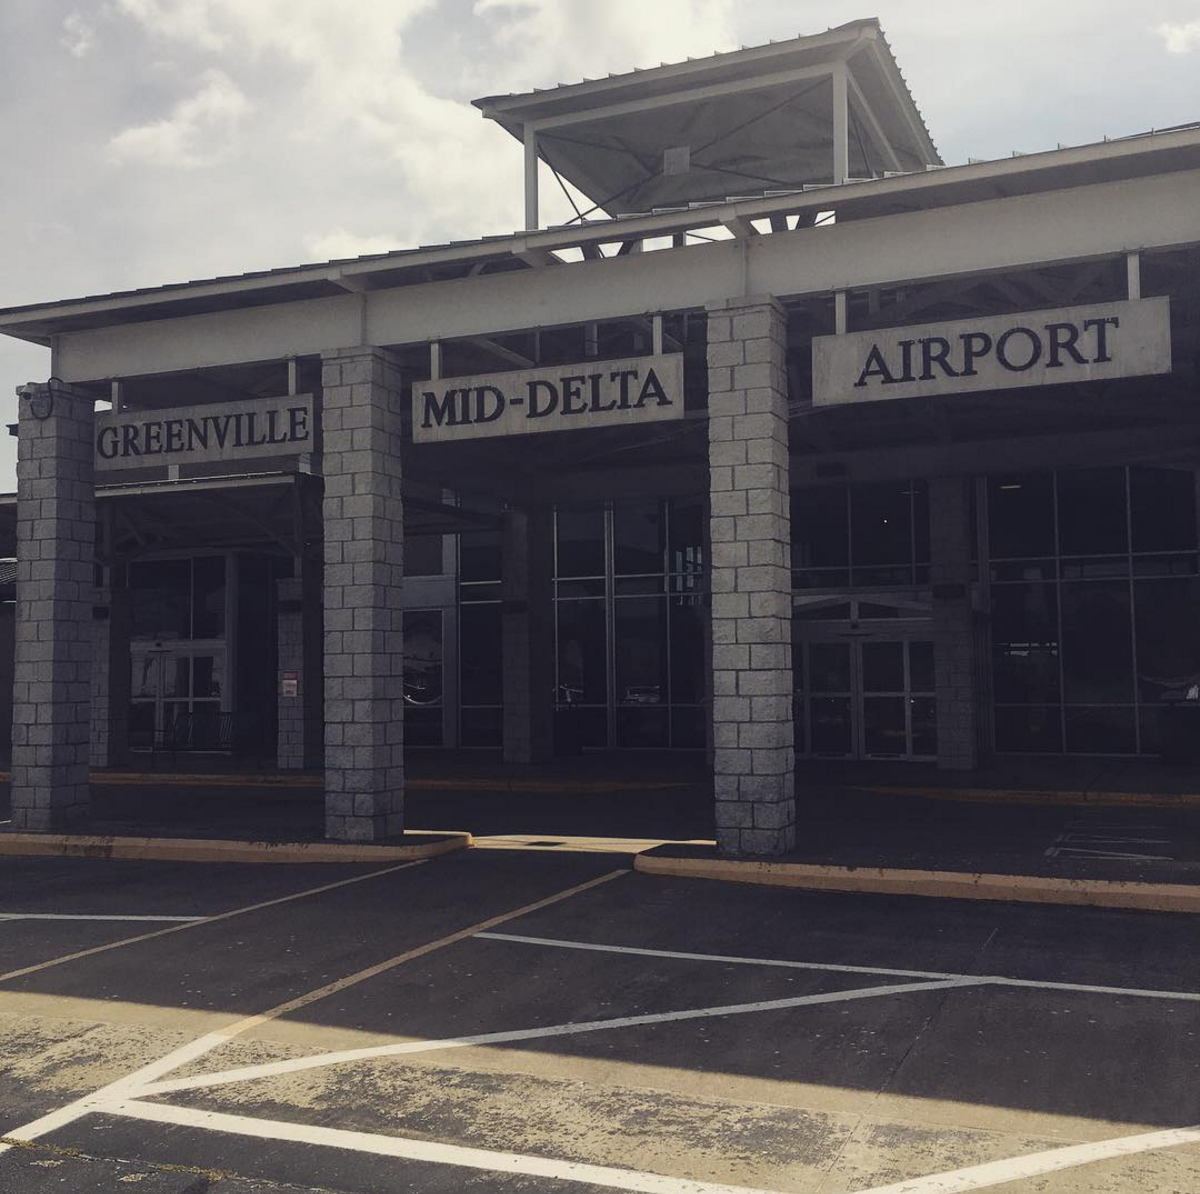 Greenville mid delta airport